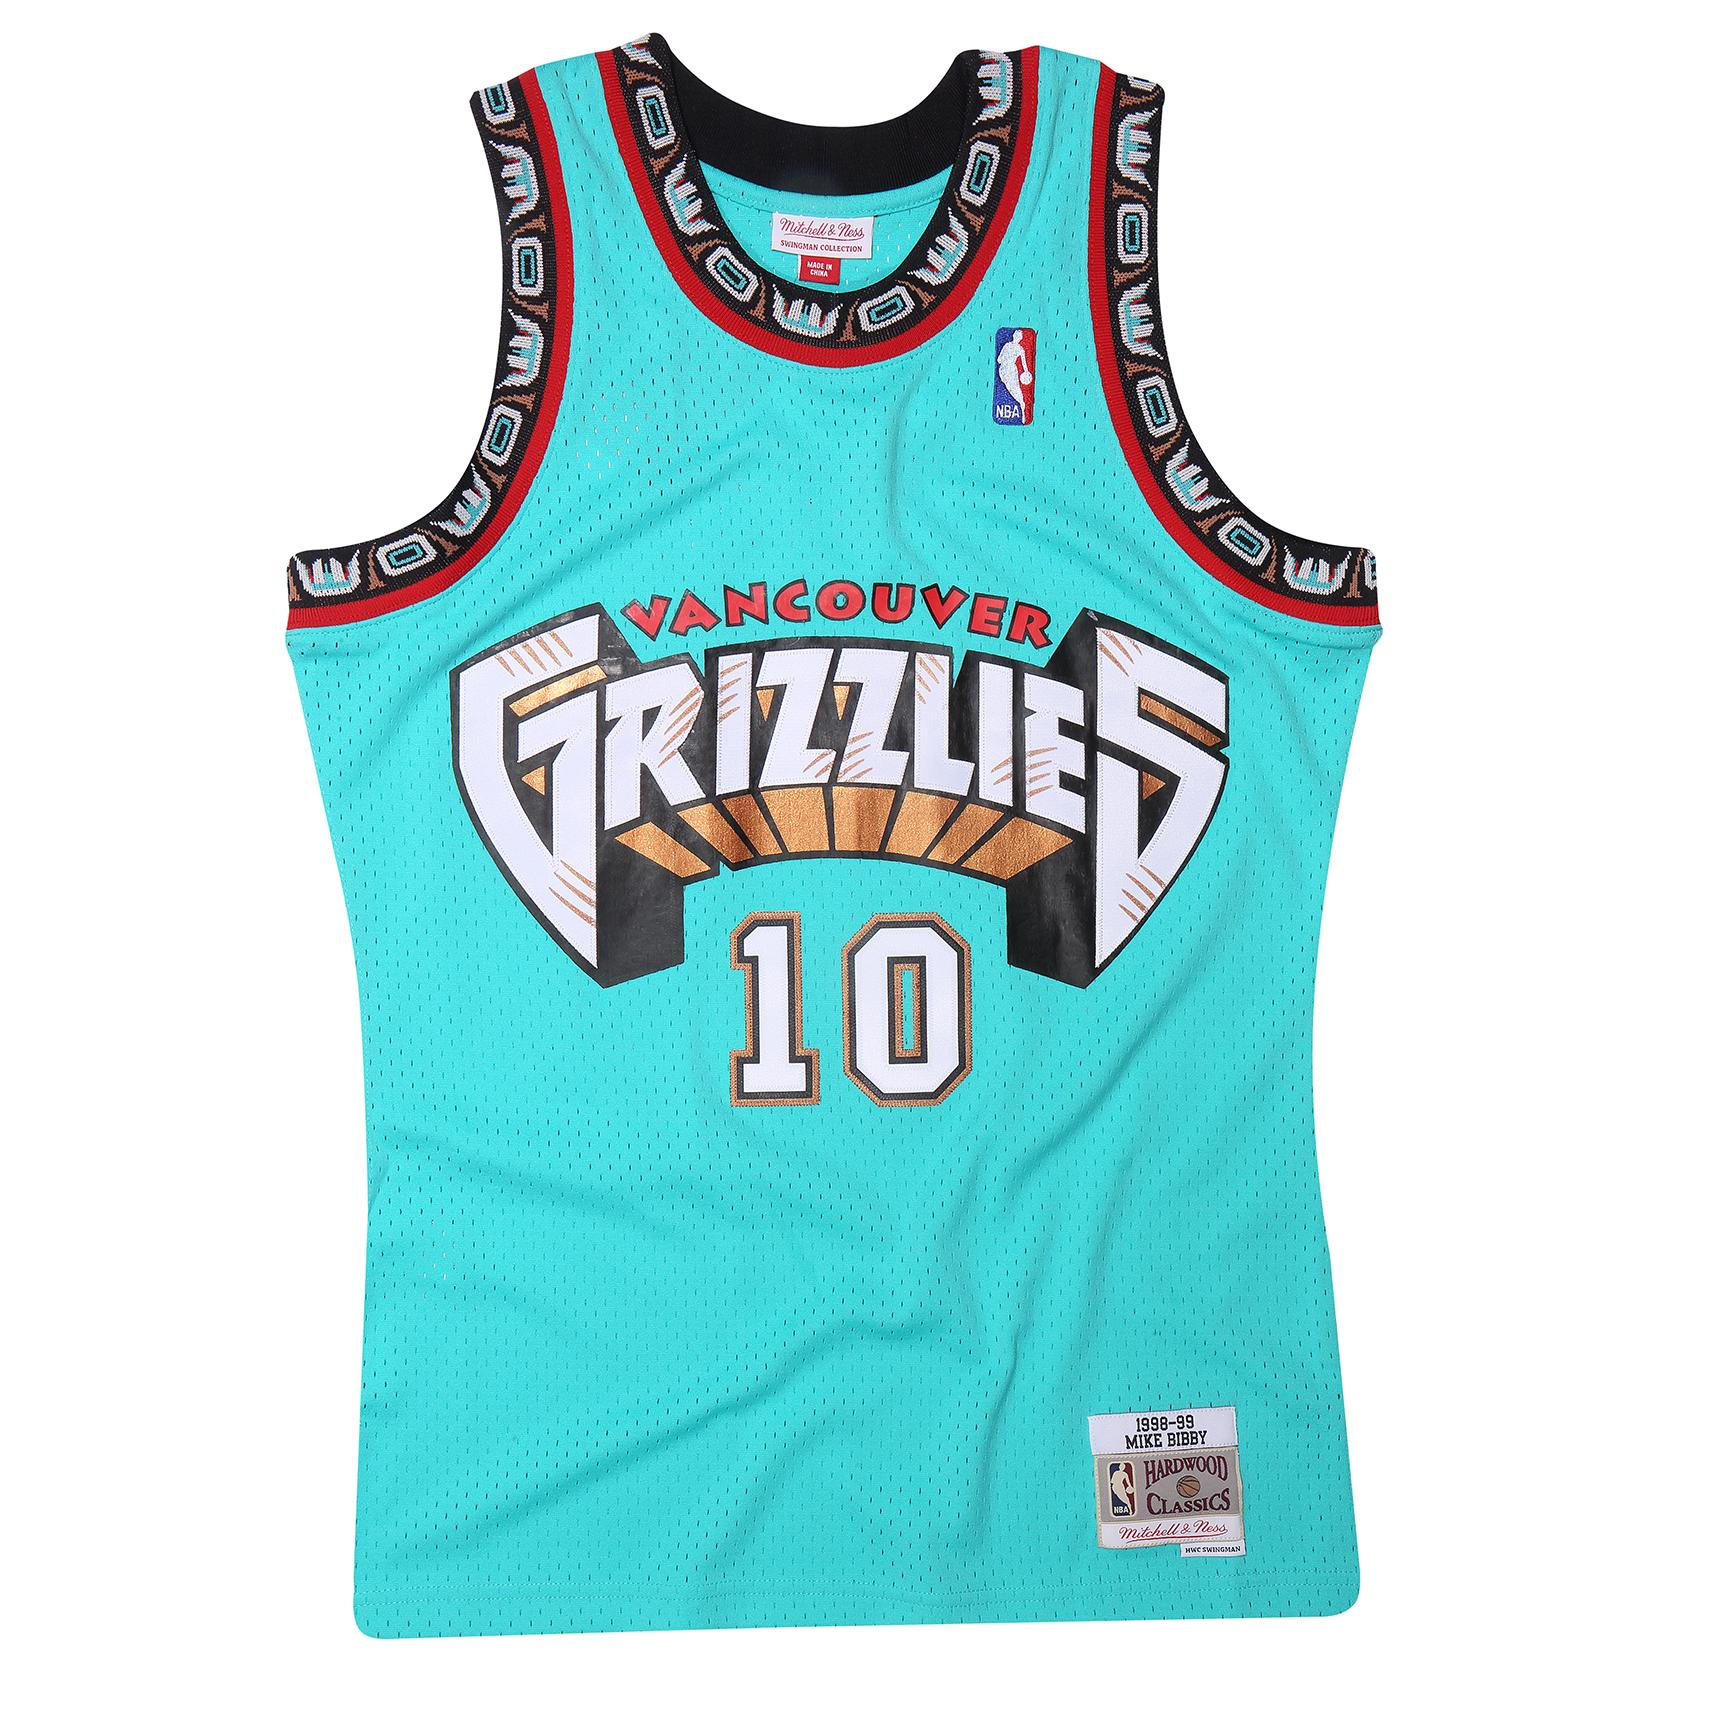 c1ea6da6 Mitchell & Ness | Vancouver Grizzlies Mike Bibby 1998-99 Road ...